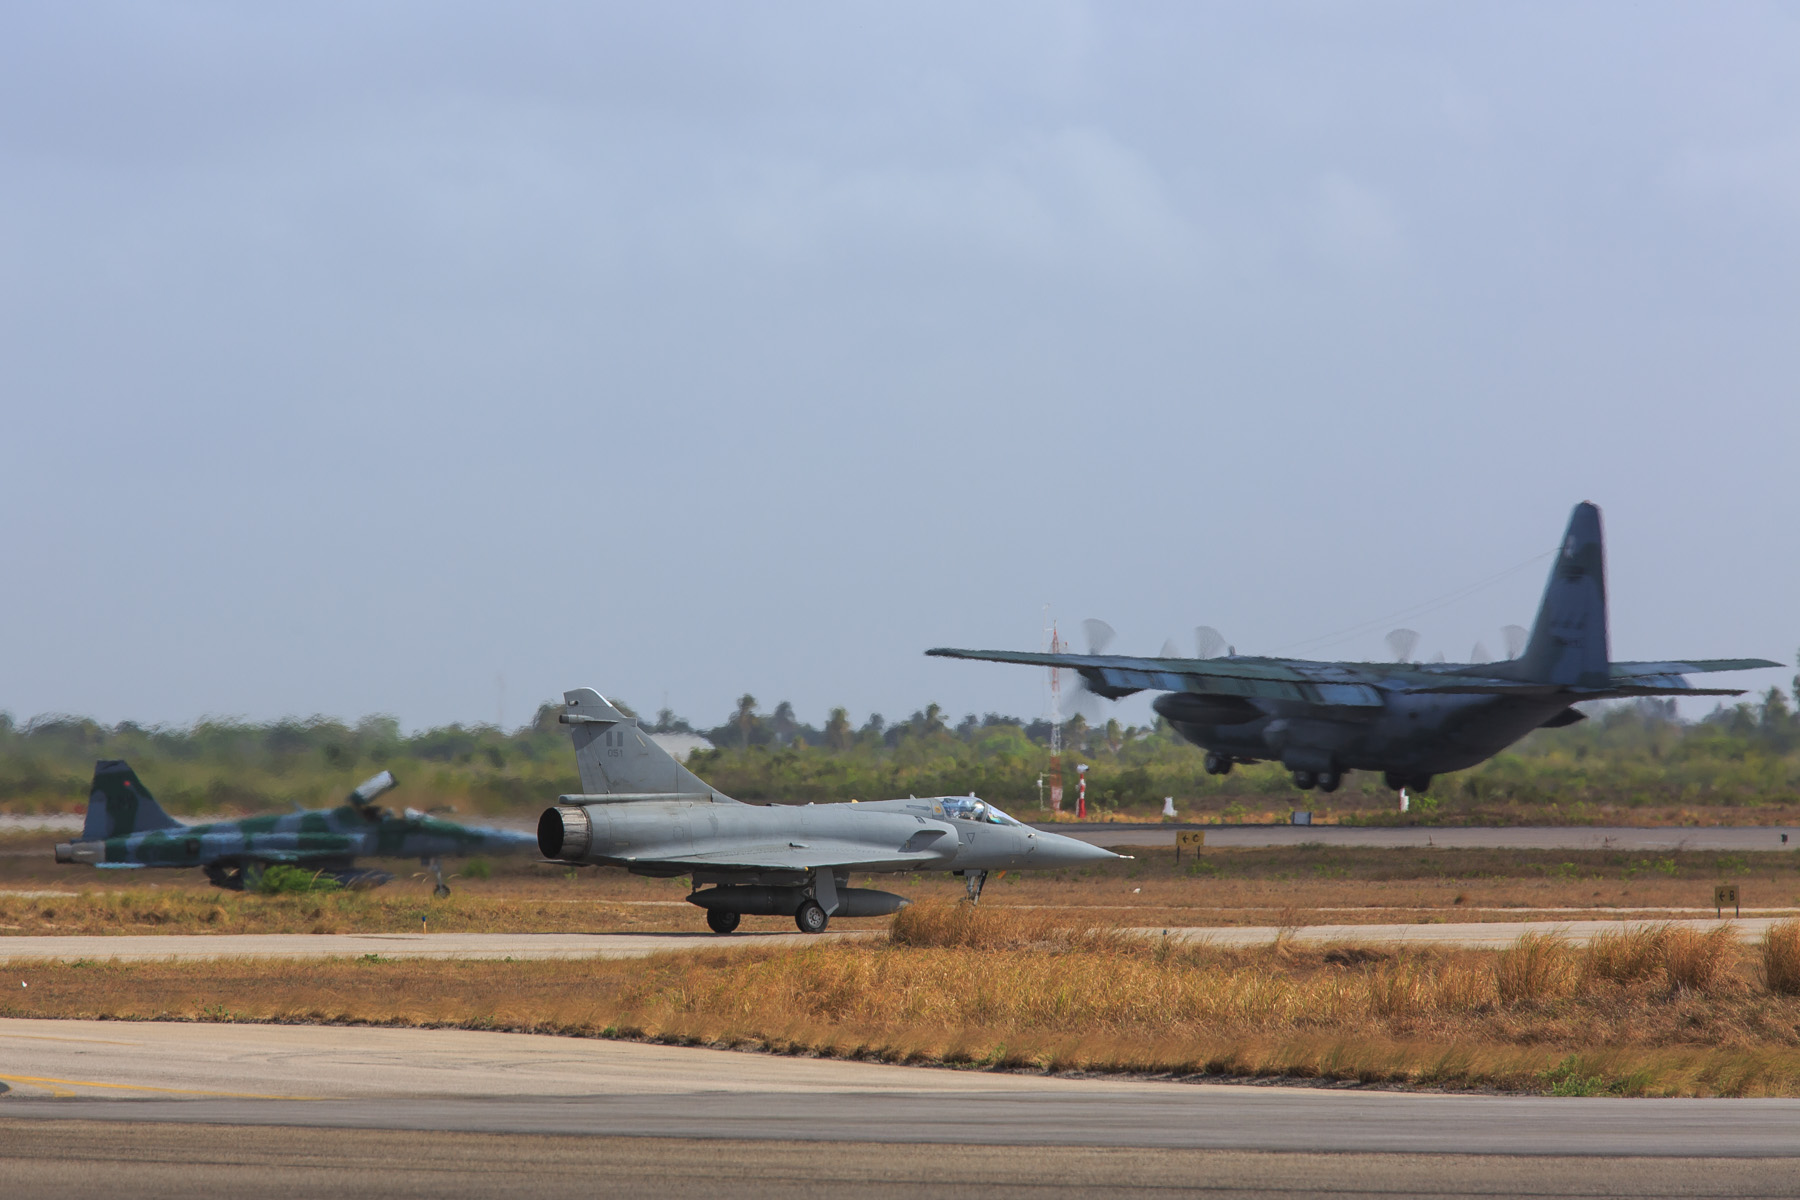 First Composite Air Operation in the exercise gathers 59 aircraft; see the video